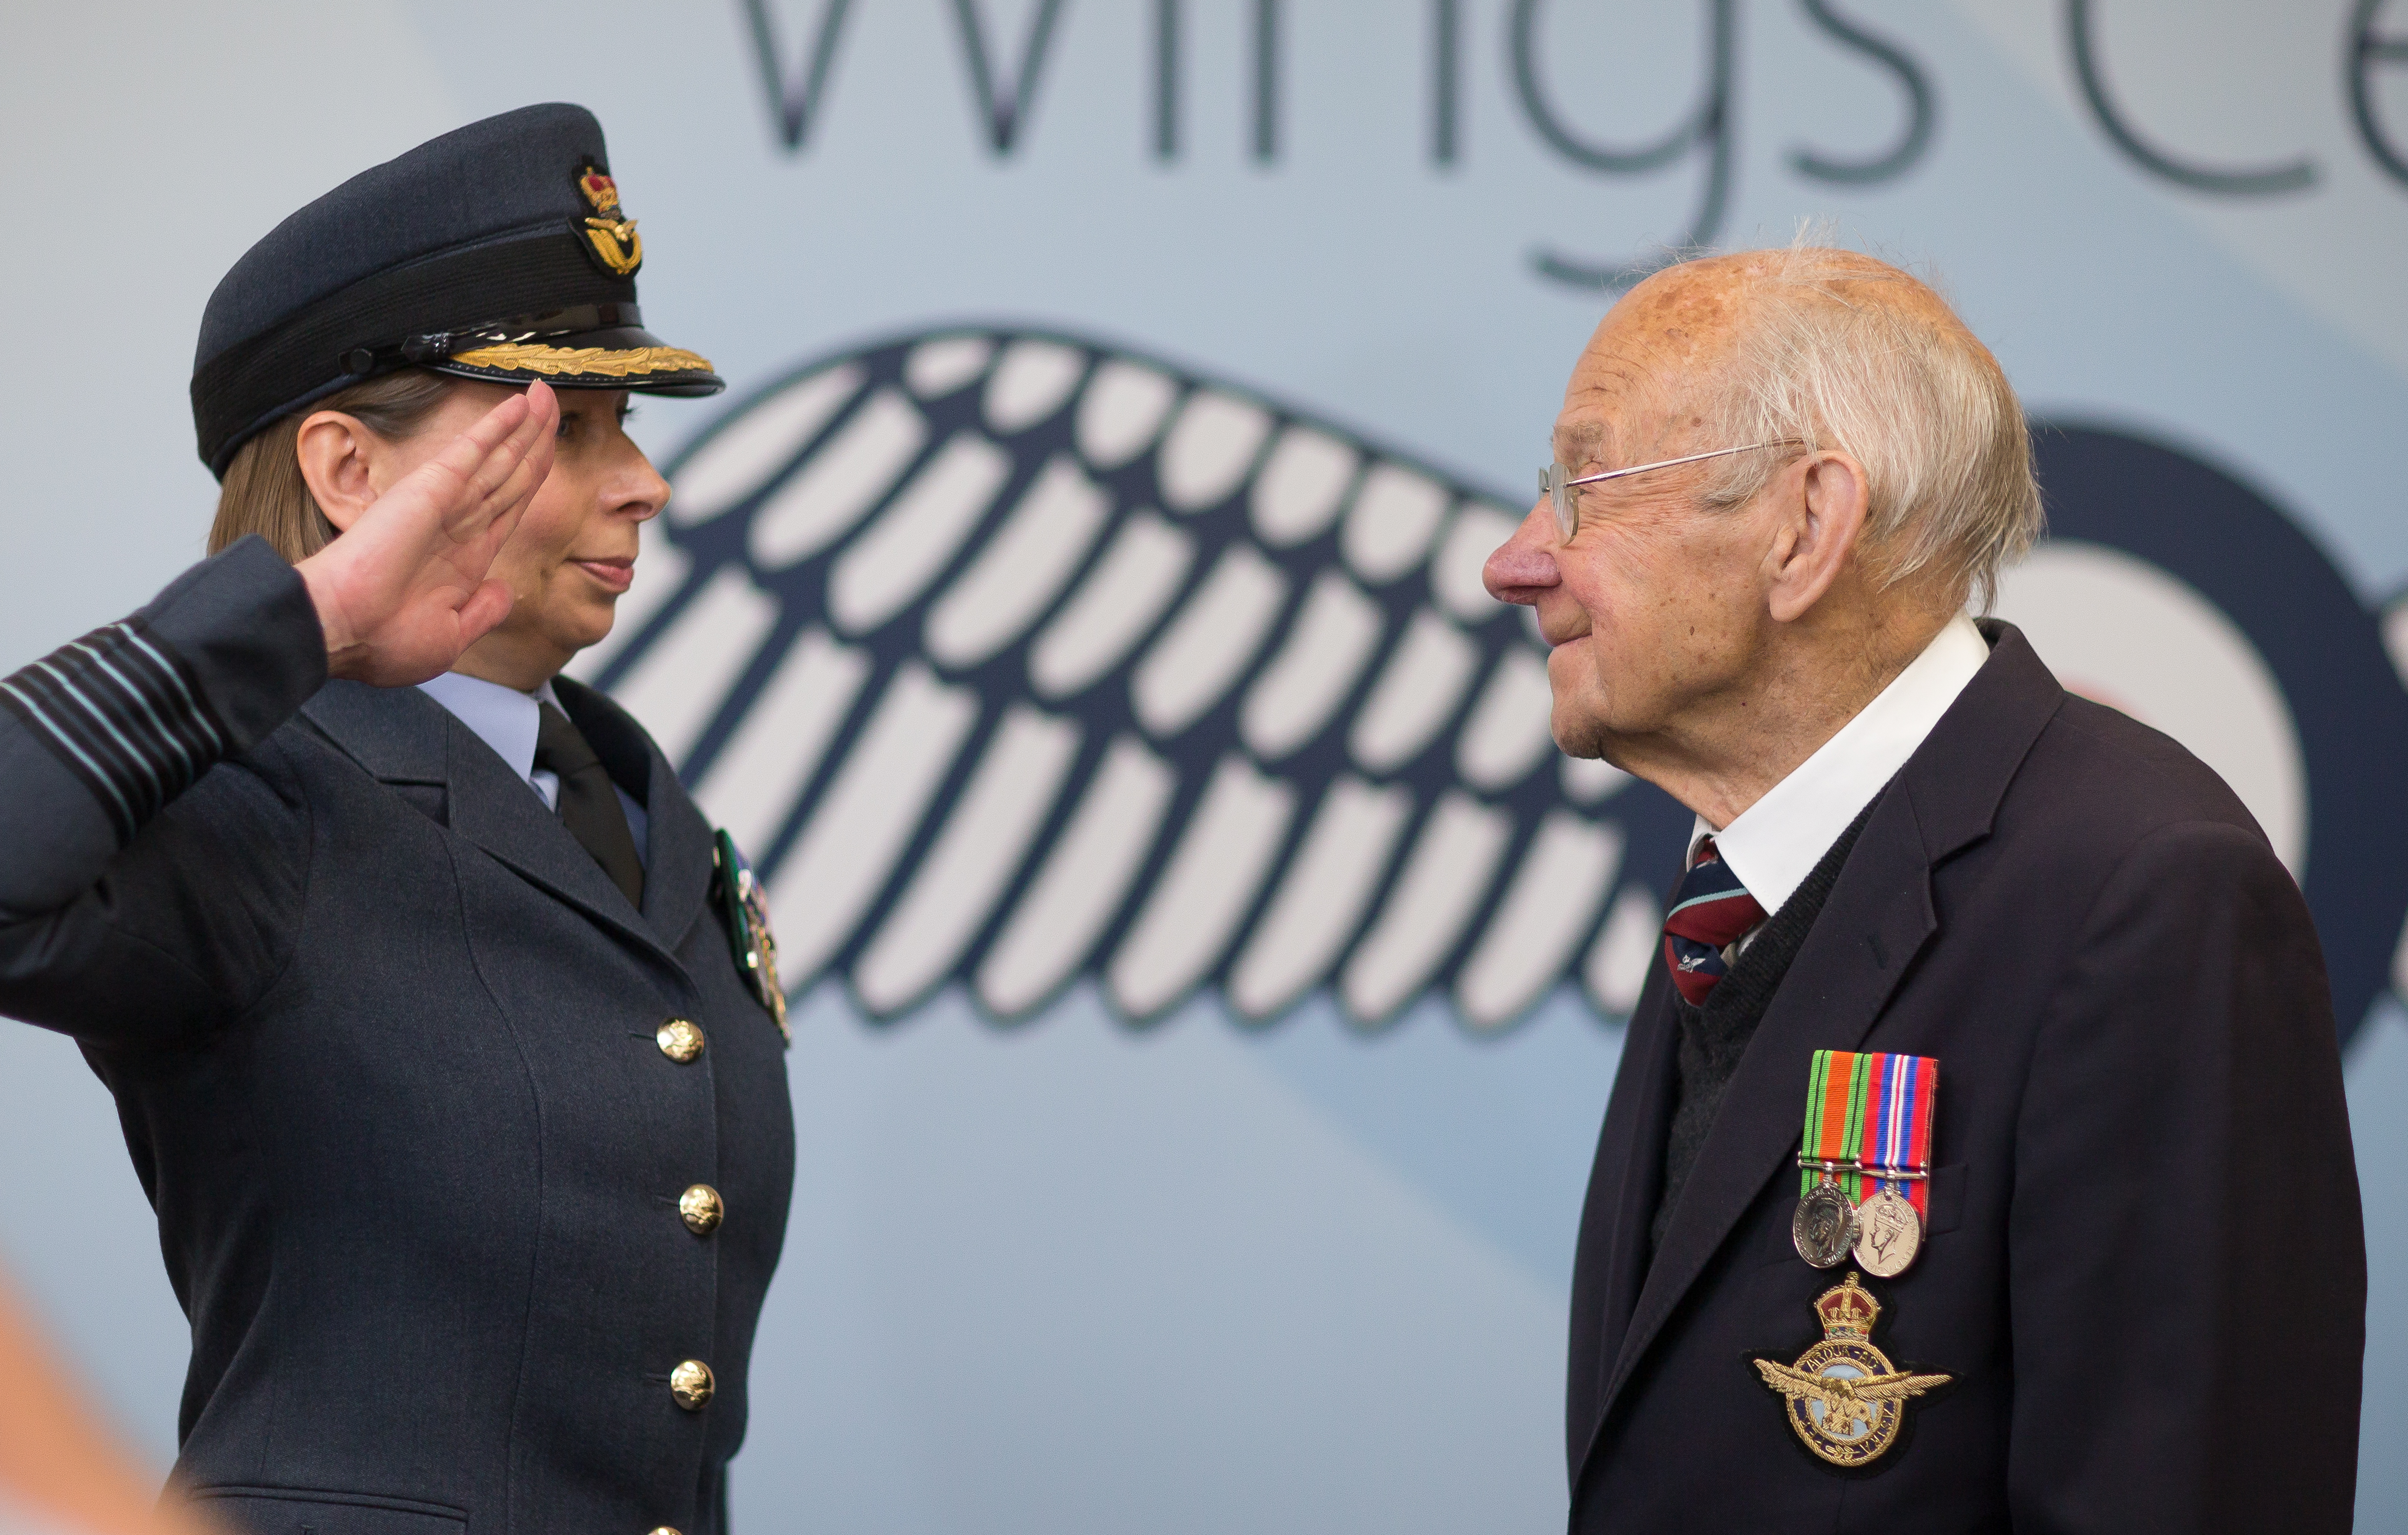 How a Wings Centre helped a WWII veteran finally get his medals -